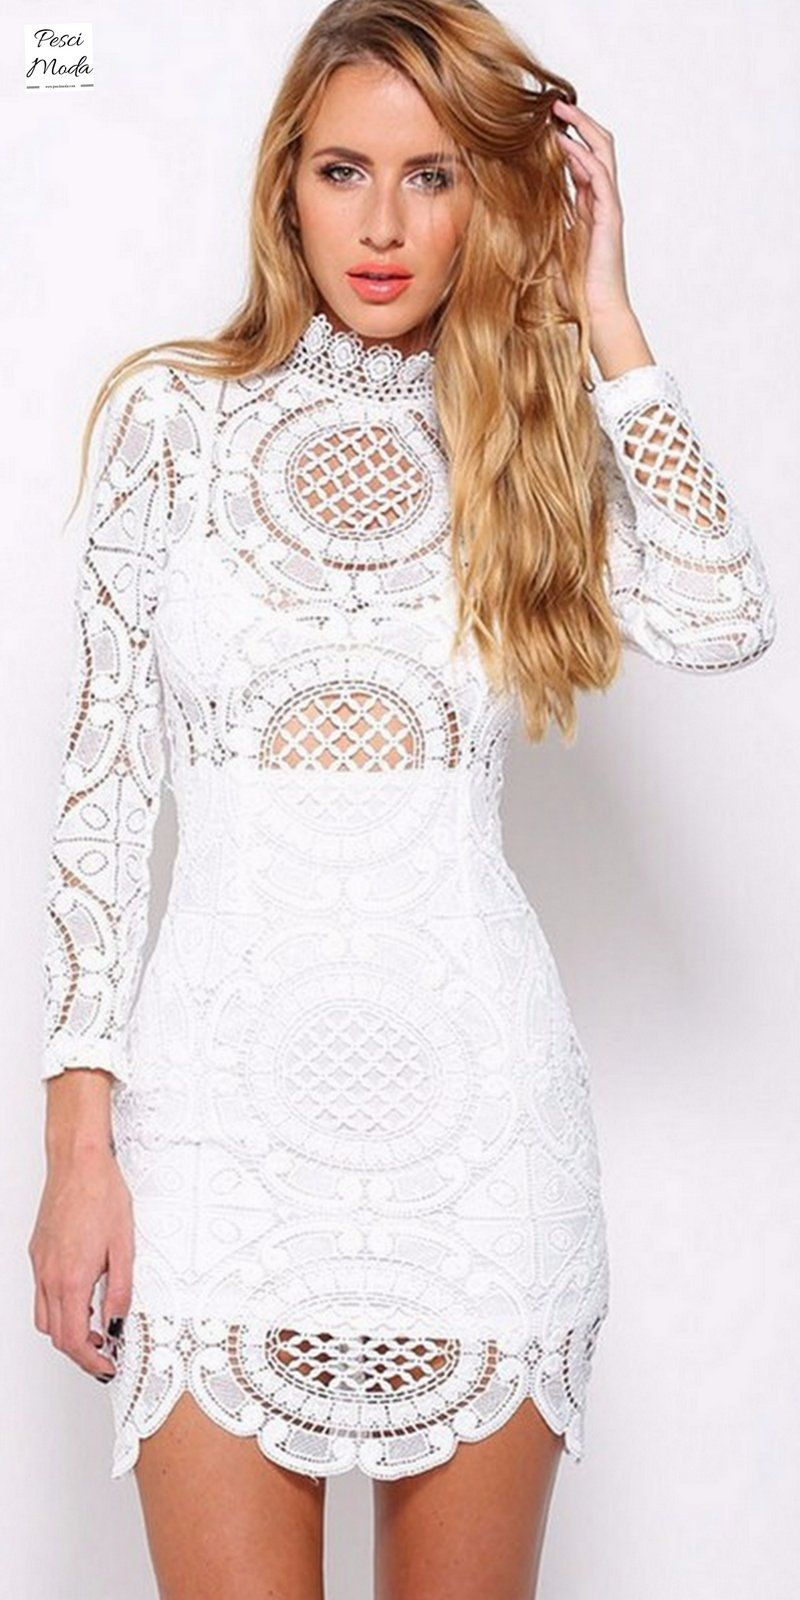 Long Sleeve White Lace Floral Embroidery White Party Wear Dress With   FreeShipping. Shop Online Today.  MidiDresses  DressesForWomen   PartyDresses ... db97e5e4e